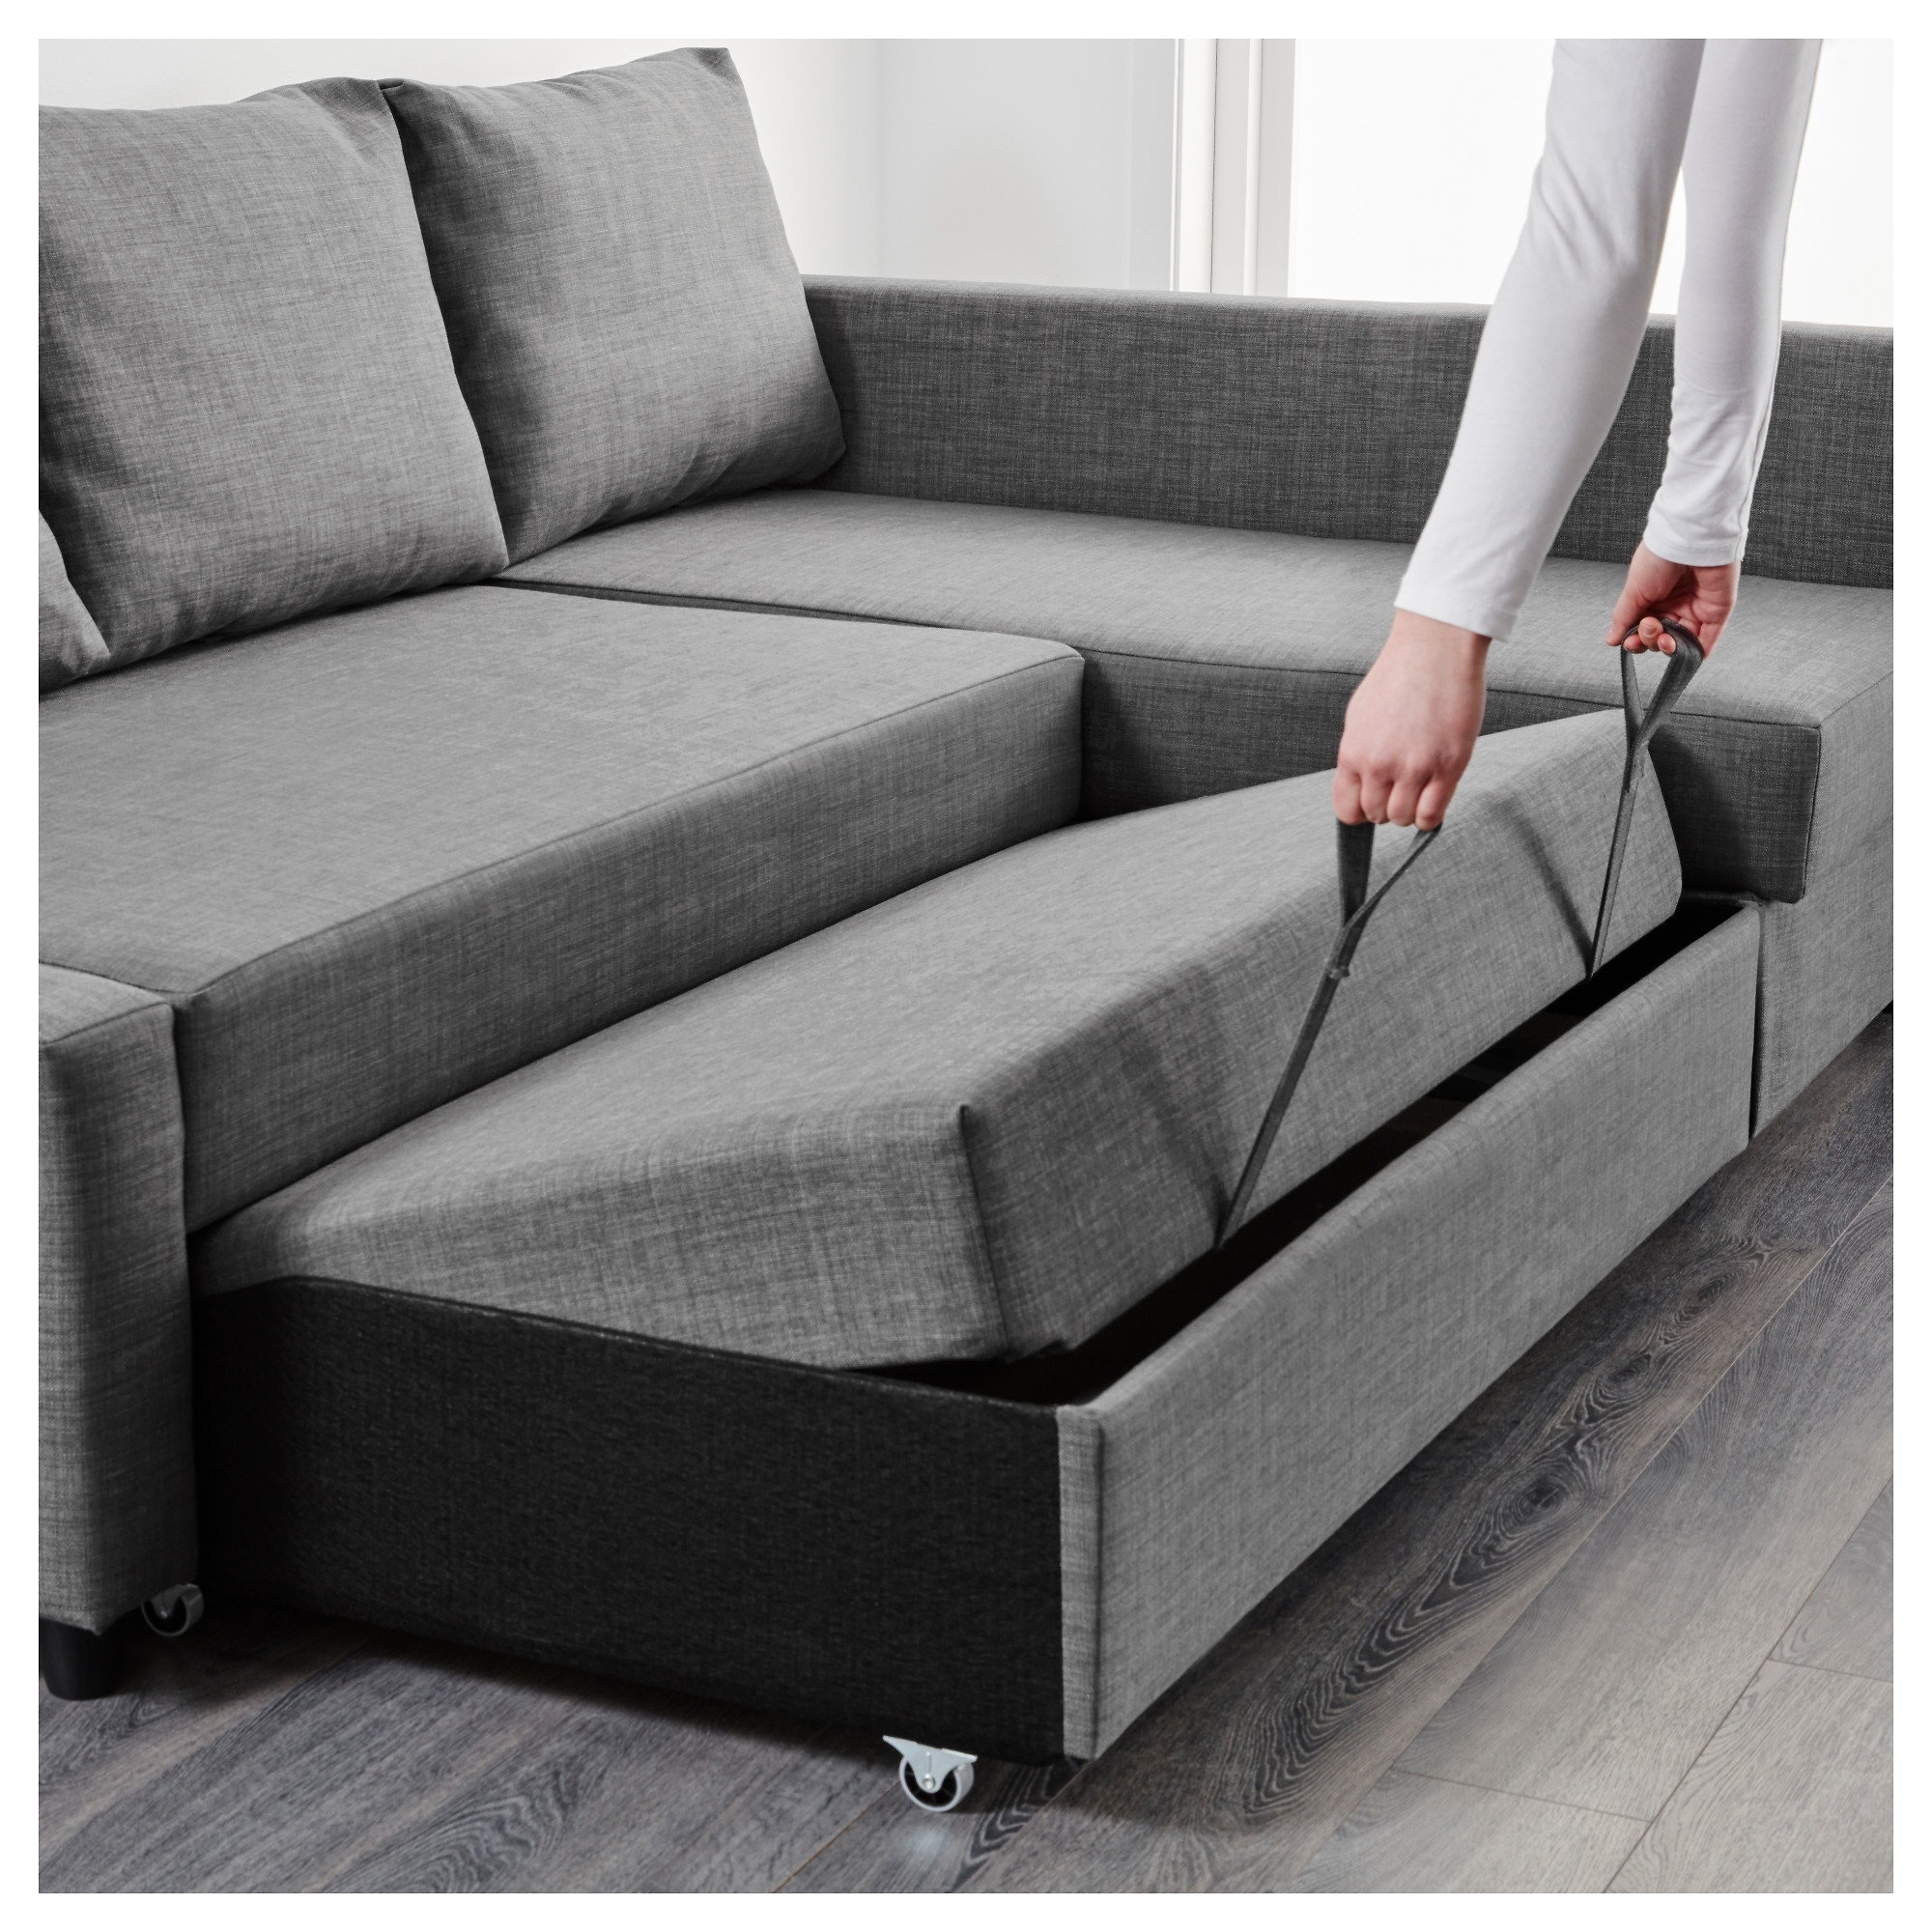 Fashionable Grey Sofas With Chaise For Friheten Corner Sofa Bed With Storage Skiftebo Dark Grey – Ikea (View 7 of 15)